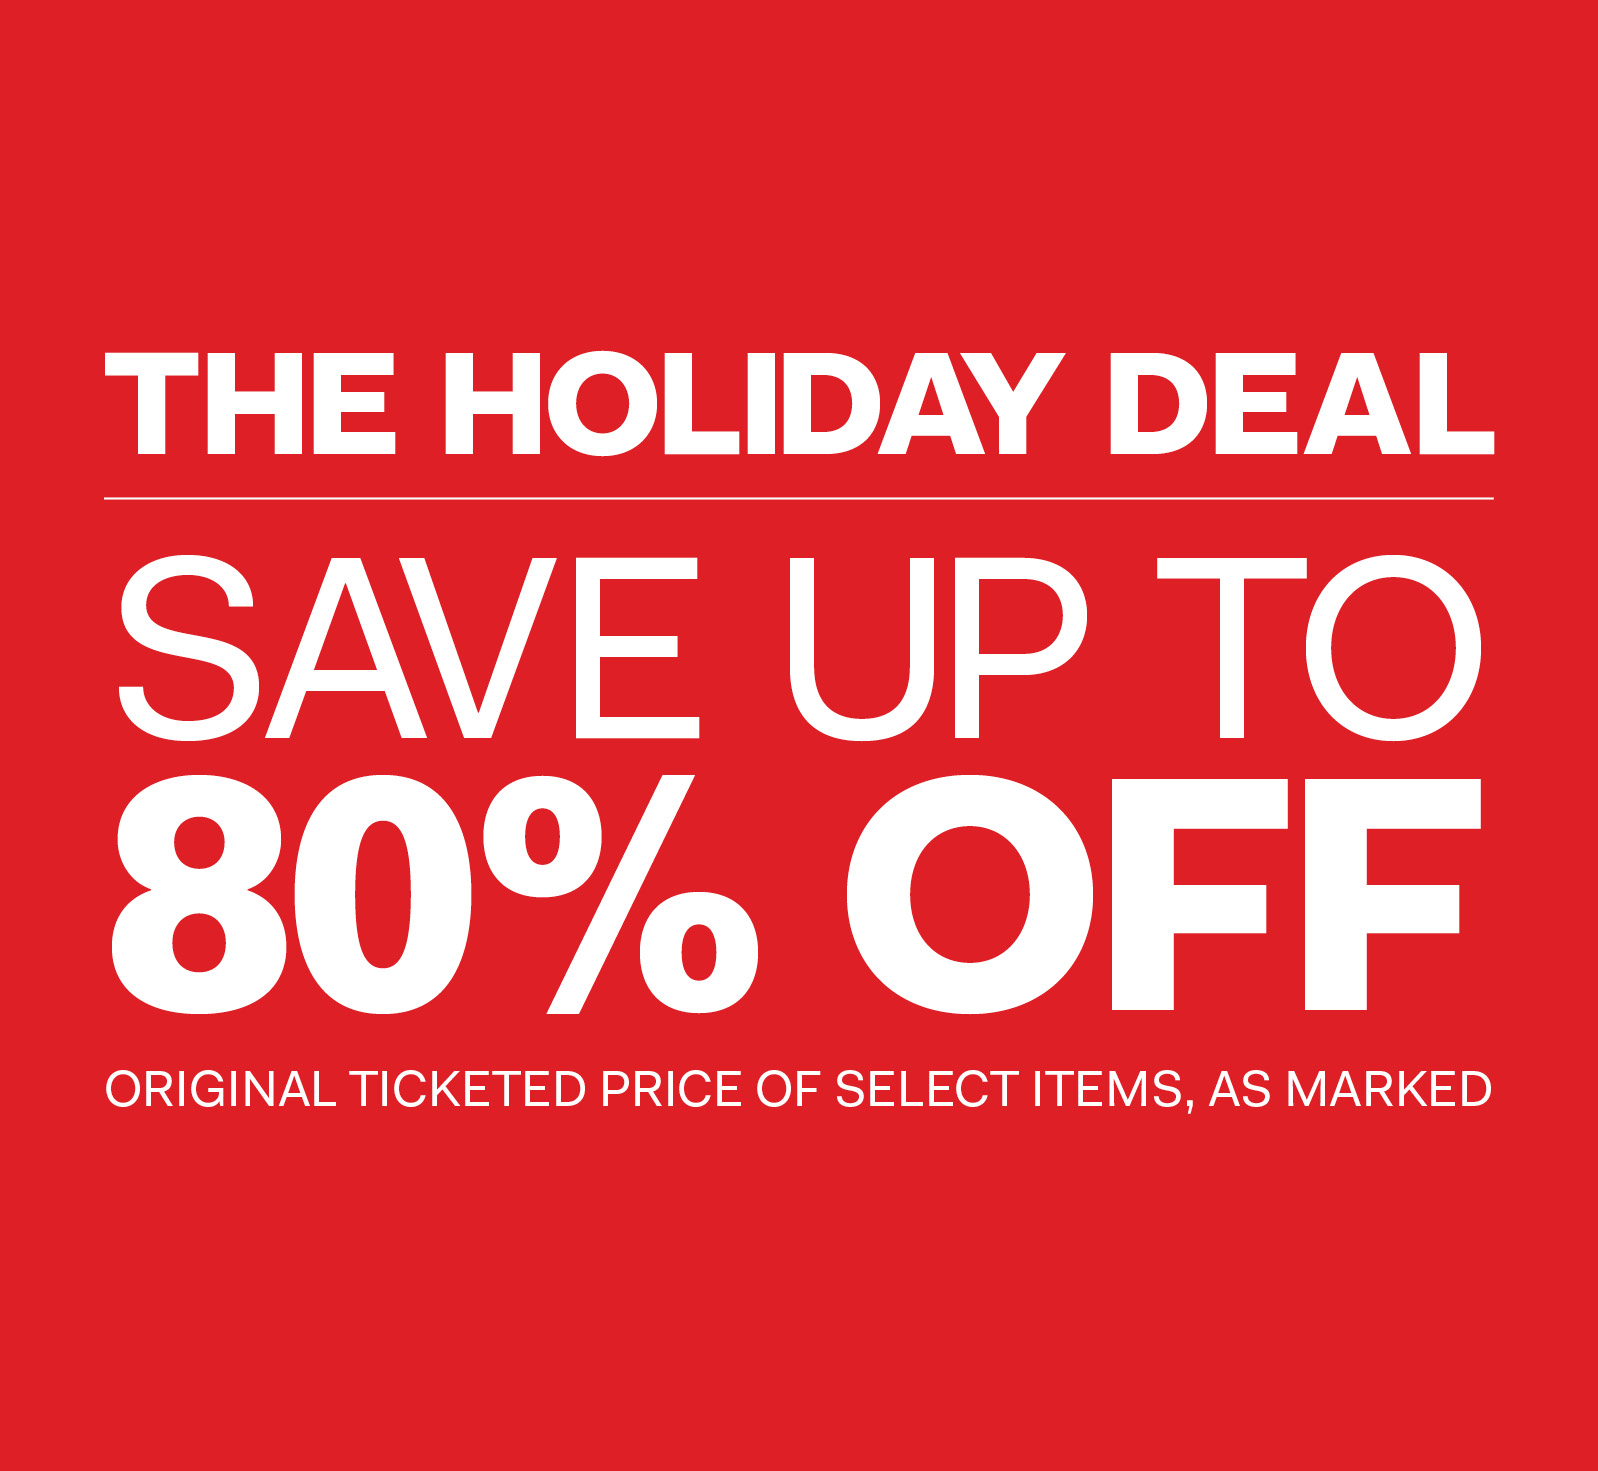 hro_the_holiday_deal_fw20_mobileweb